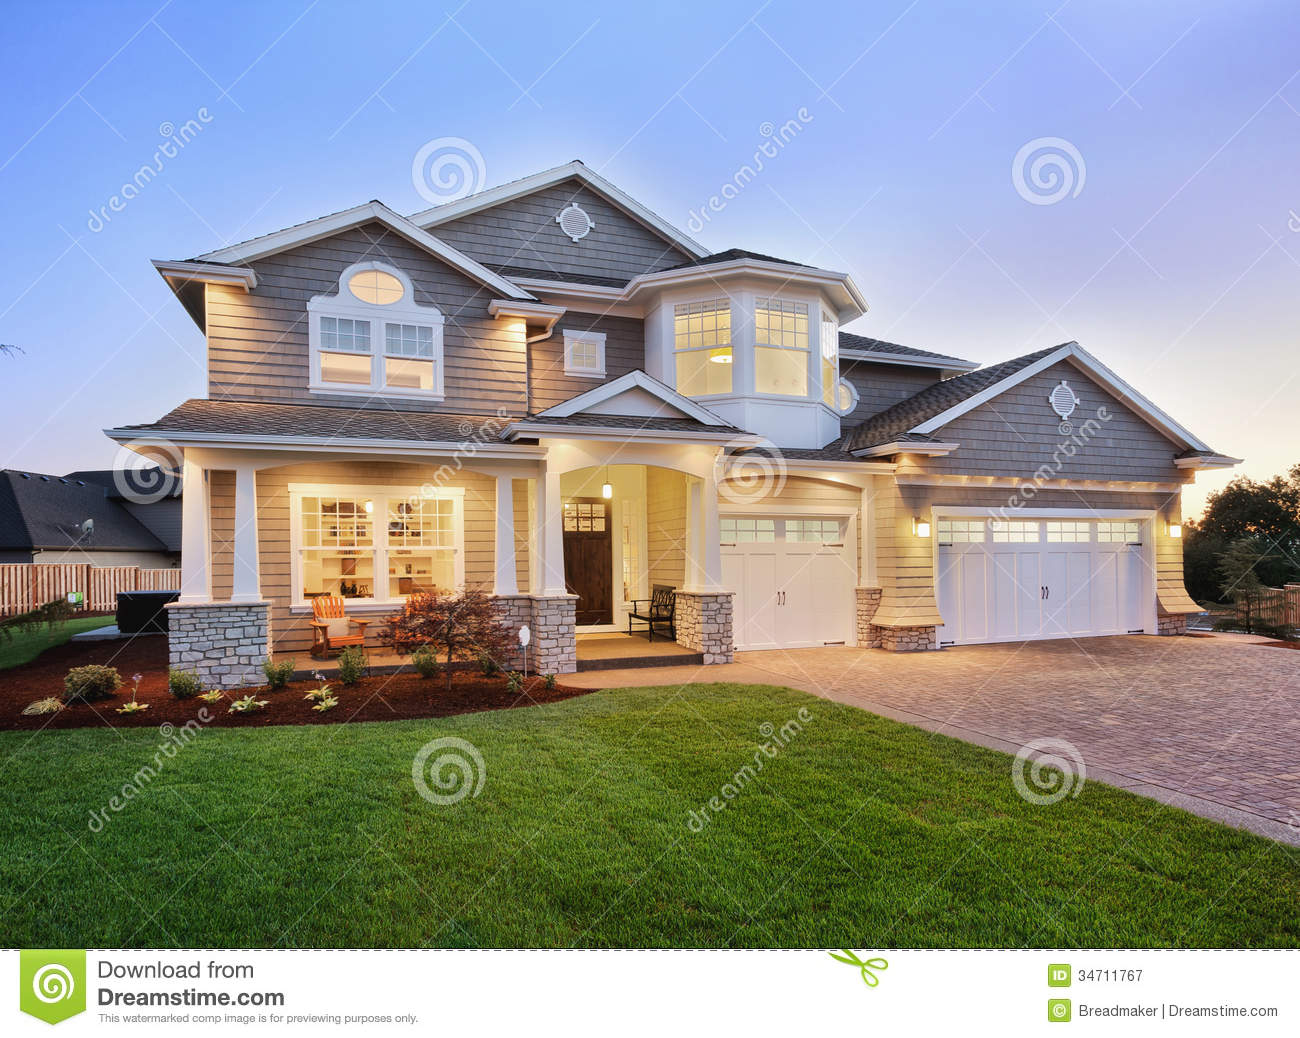 beautiful home exteriors beautiful new home exterior royalty free stock photography image - Home Exterior